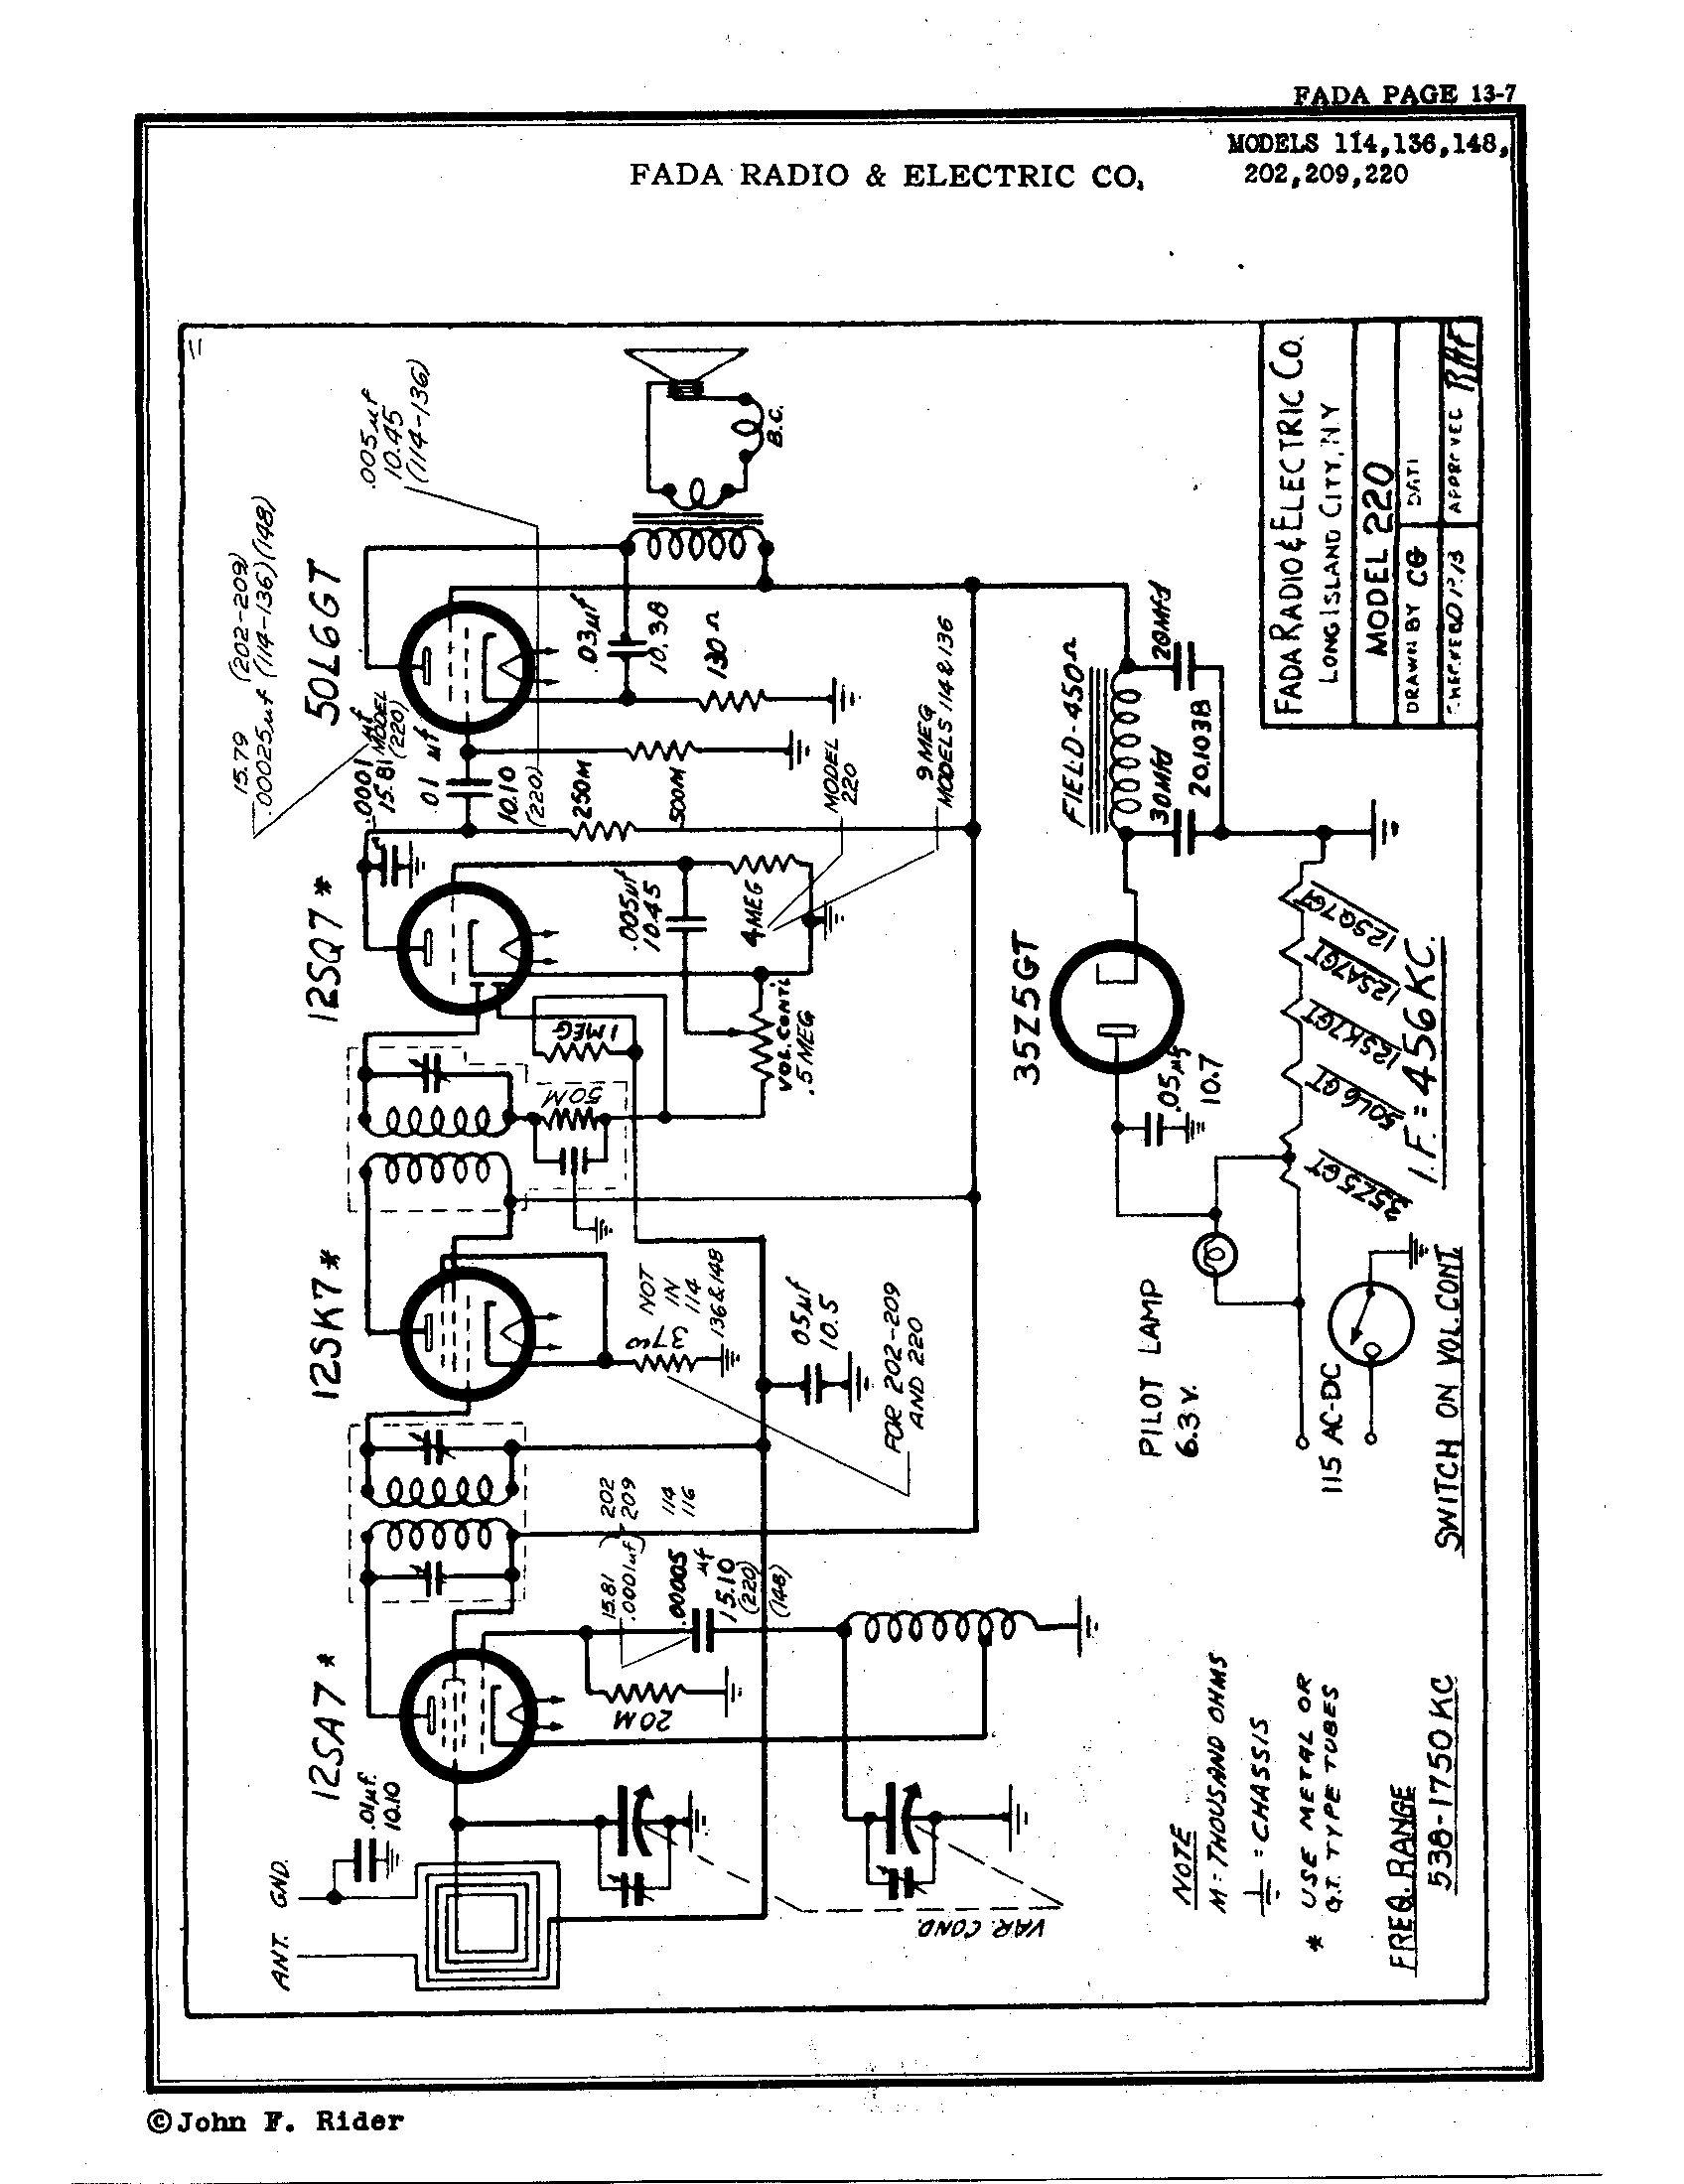 6ge5 Stereo  lifier Part 1 Circuit besides 119266 Jolida Schematic Questions besides Tda2030a Power  lifier Schematic Diagram also Filament Bias Part 1 Concept together with 46 Filament Bias. on tube amplifier capacitors